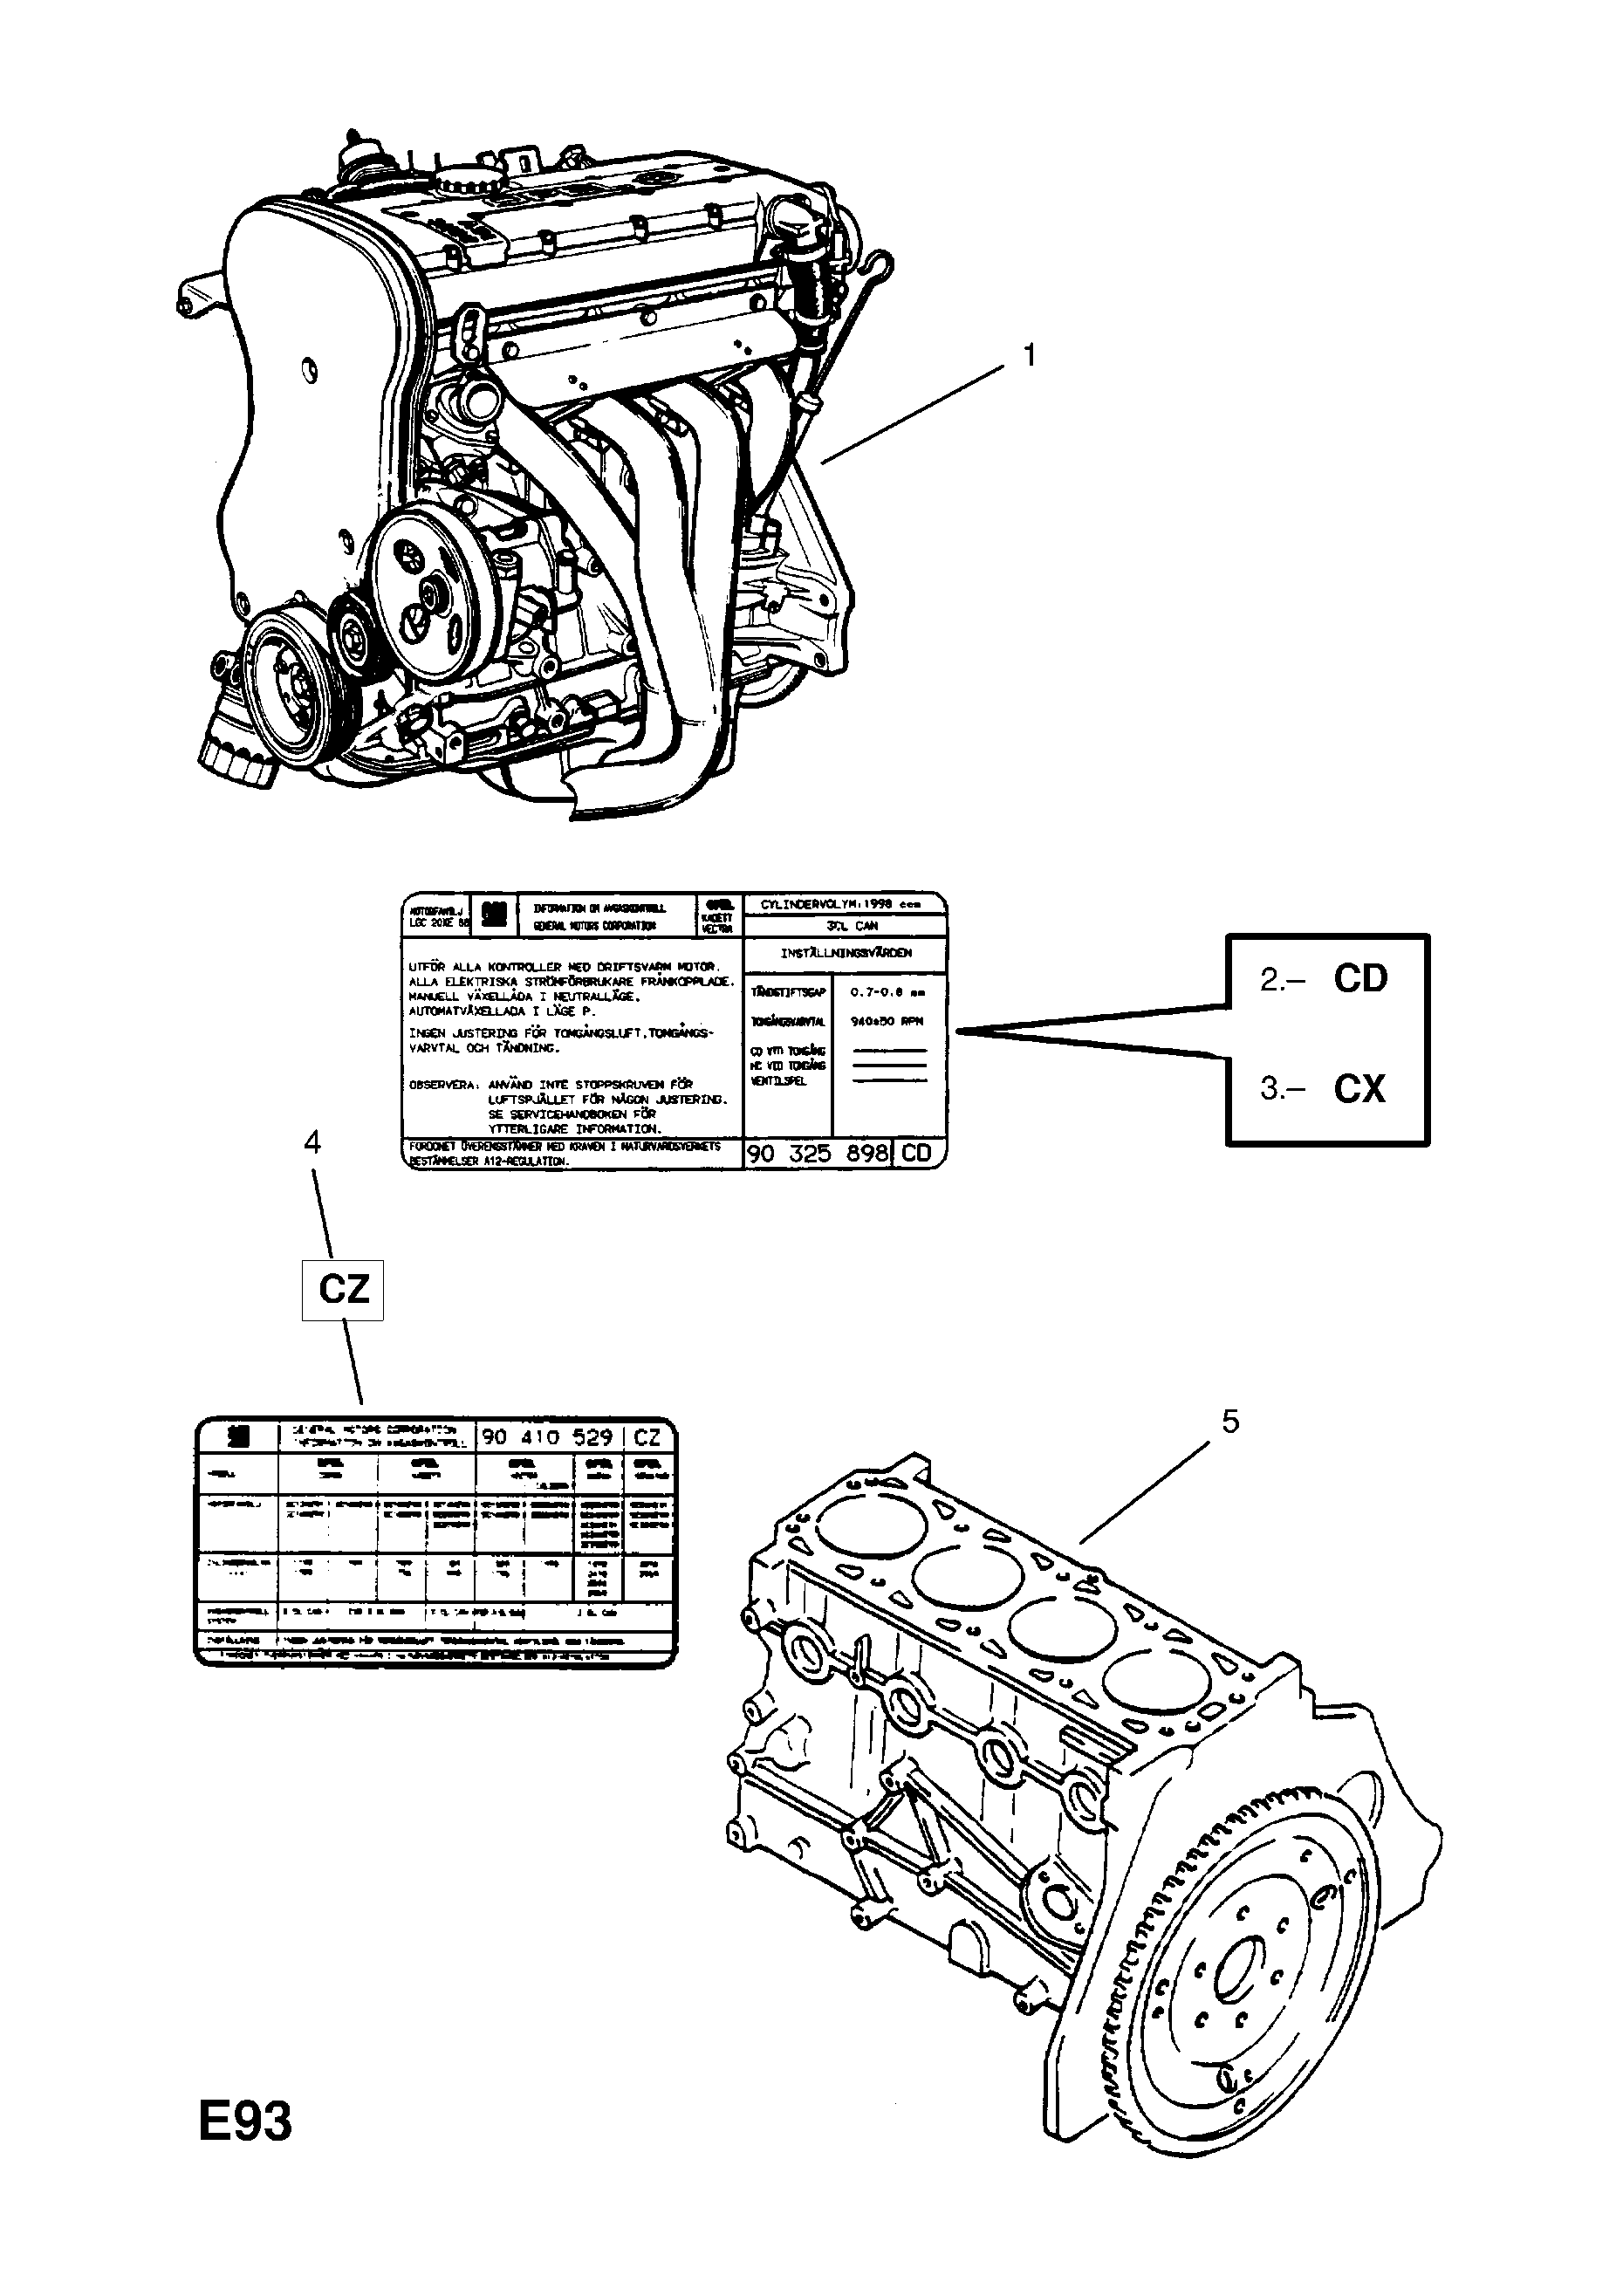 ENGINE ASSEMBLY [USED WITH FIVE SPEED MANUAL TRANSMISSION